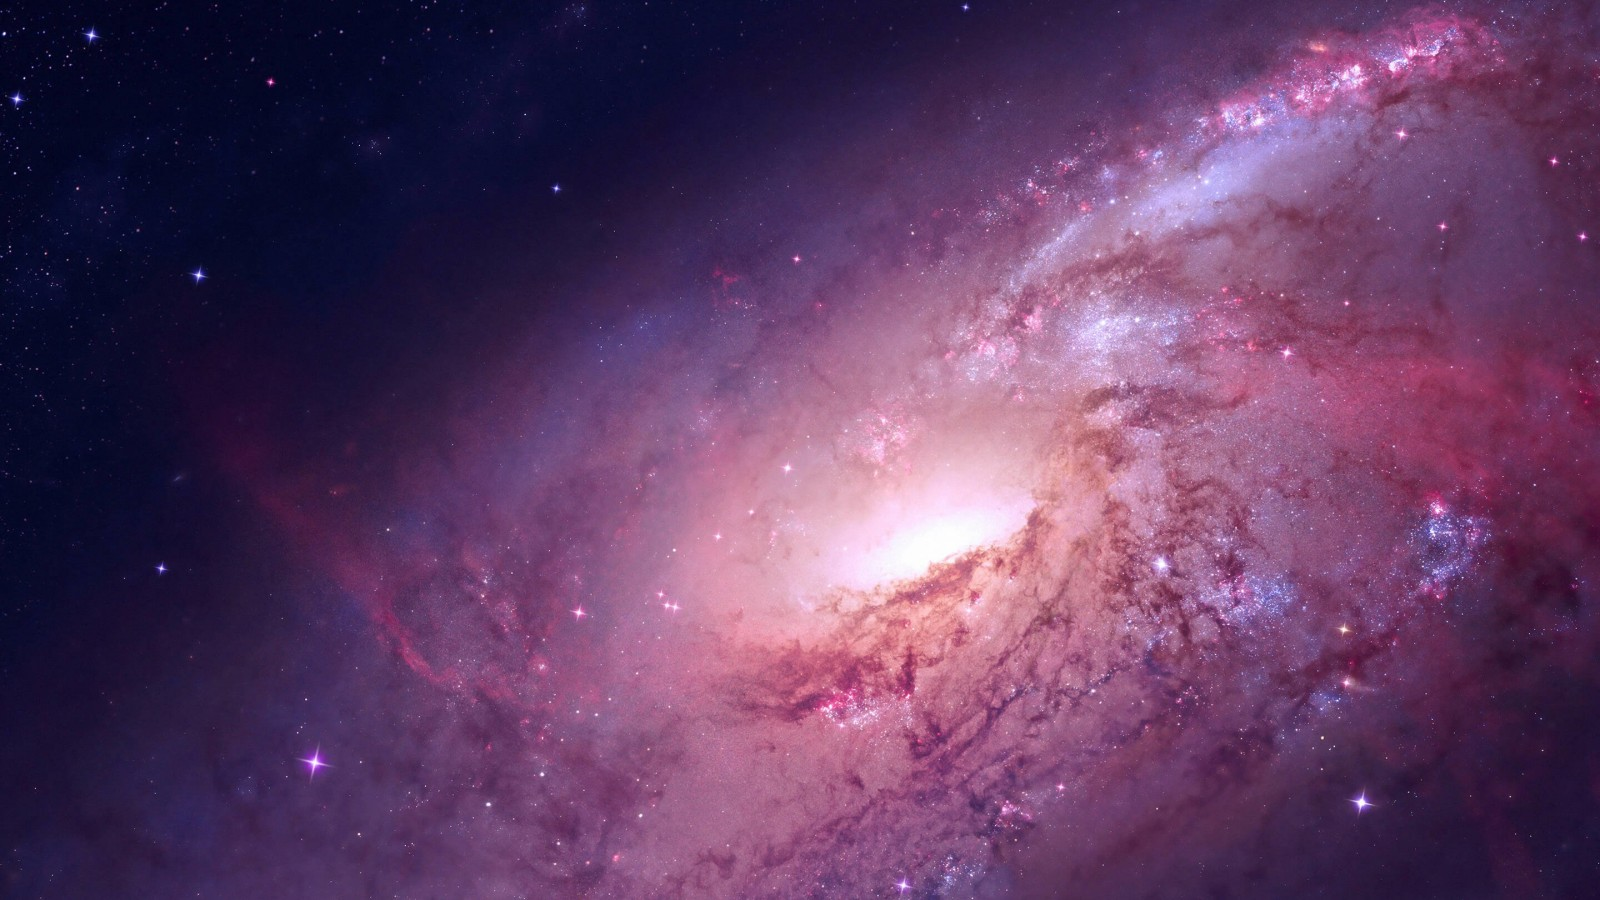 Galaxy M106 Wallpaper for Desktop 1600x900